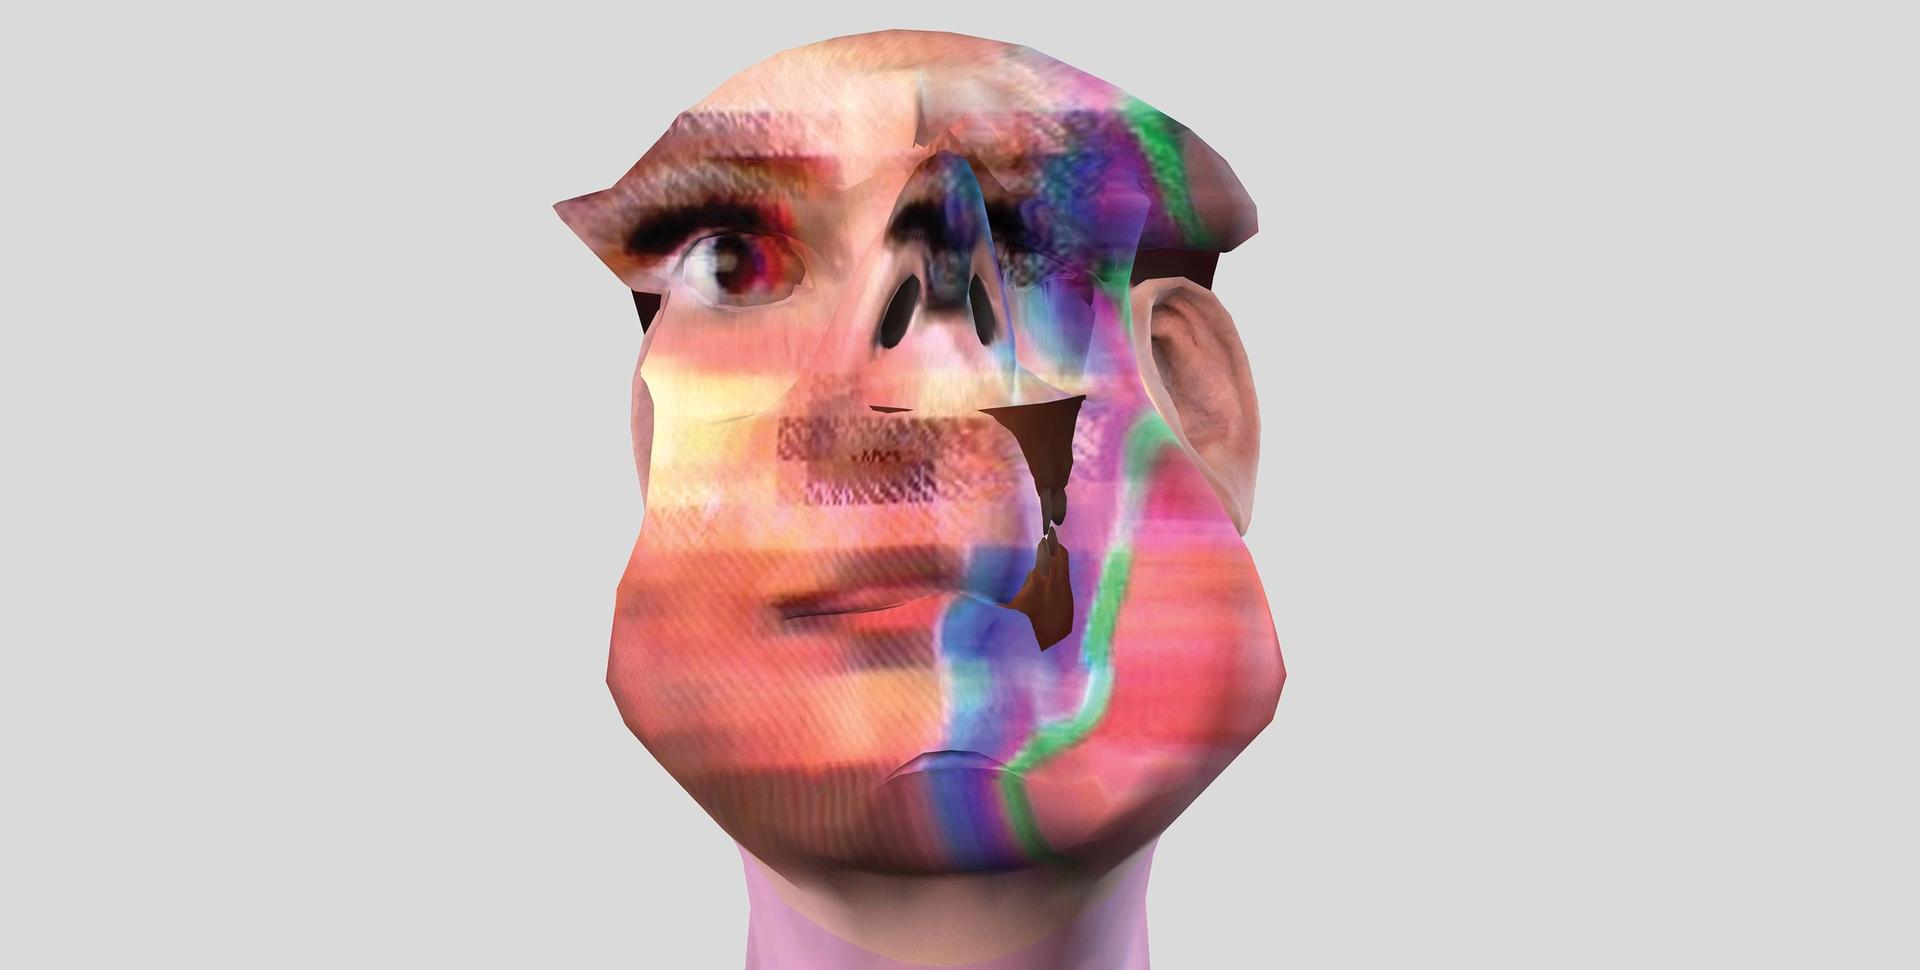 im here to learn so :)))))), created by Zach Blas and Jemima Wyman in 2017, is a four-channel HD video installation that resurrects Microsoft's 2016 AI chatbot, Tay Courtesy Zach Blas and Jemima Wyman